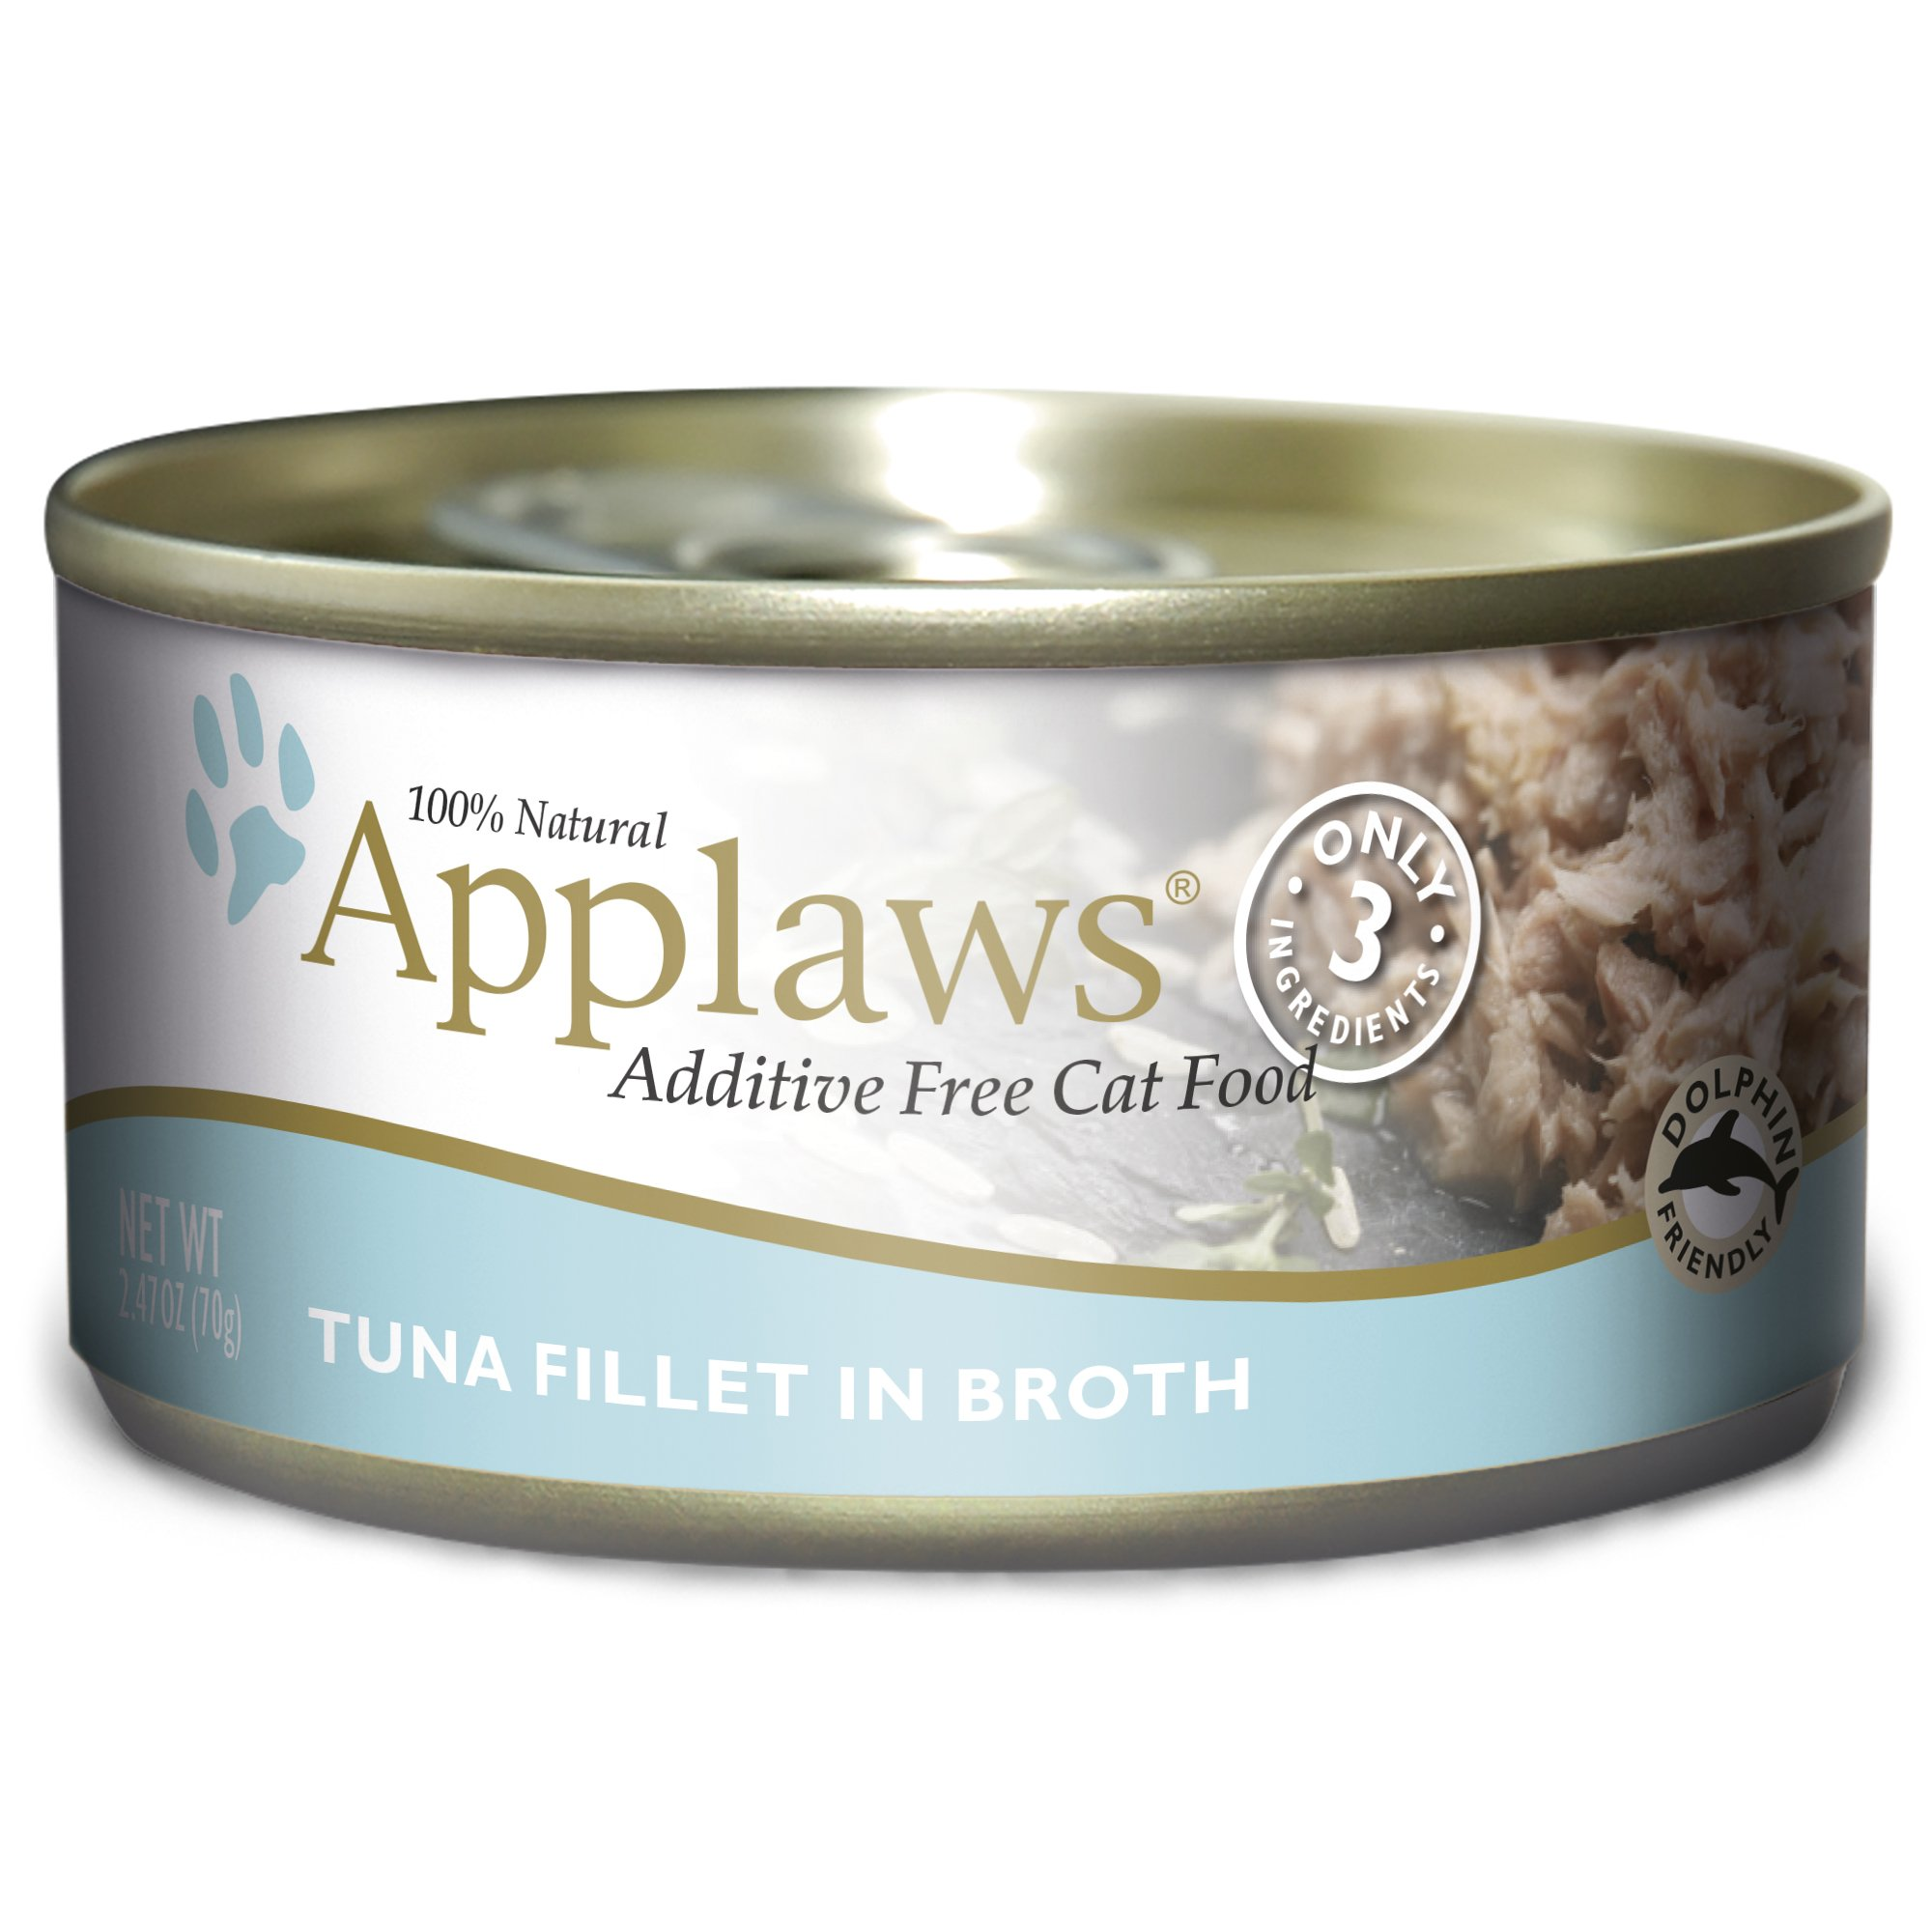 Applaws Cat Tin 2.4Oz Tuna Fillet - 24 Pack